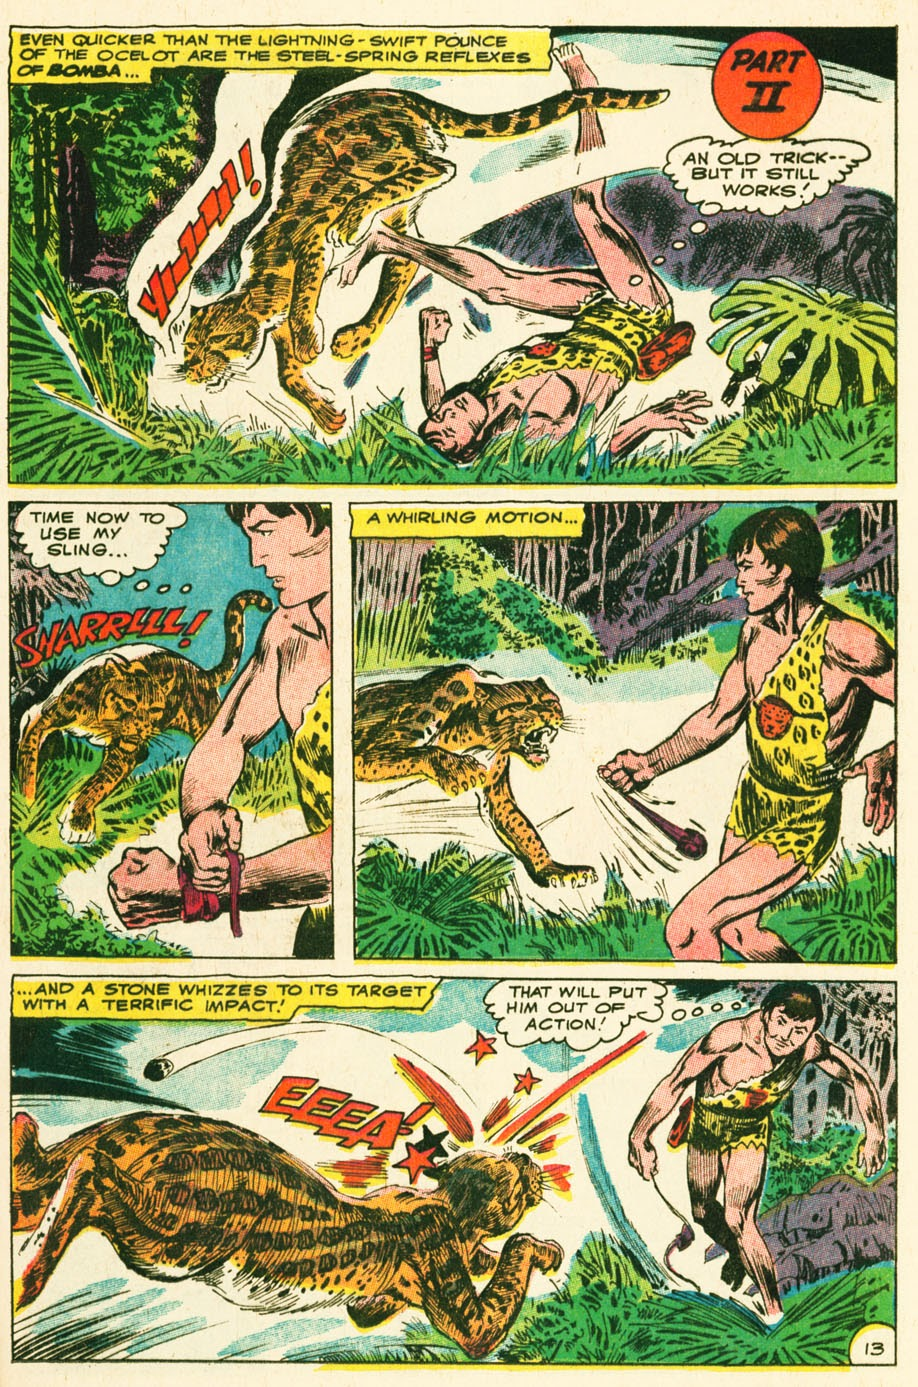 Bomba, The Jungle Boy issue 1 - Page 19